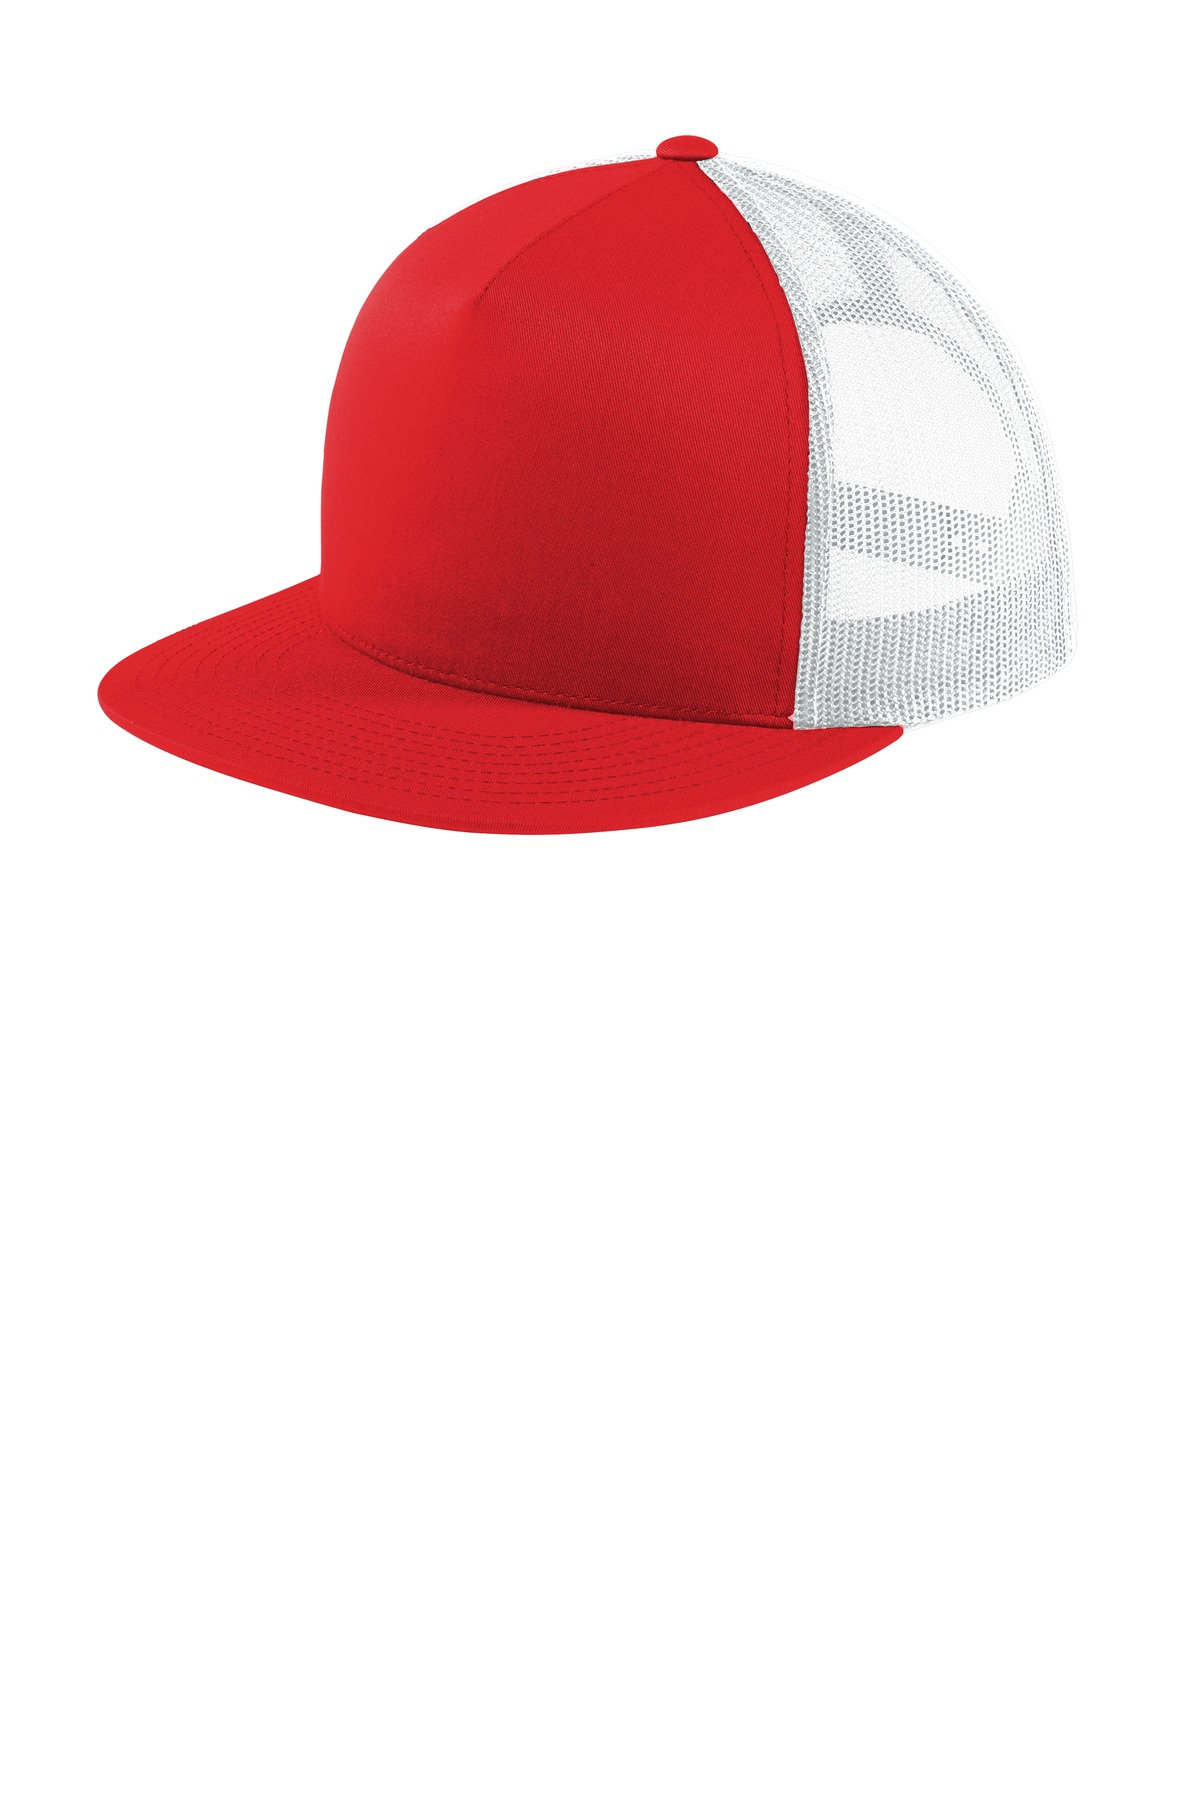 Sport-Tek  ®  Yupoong  ®  5-Panel Classic Trucker Mesh Back Cap. STC38 - True Red/ White